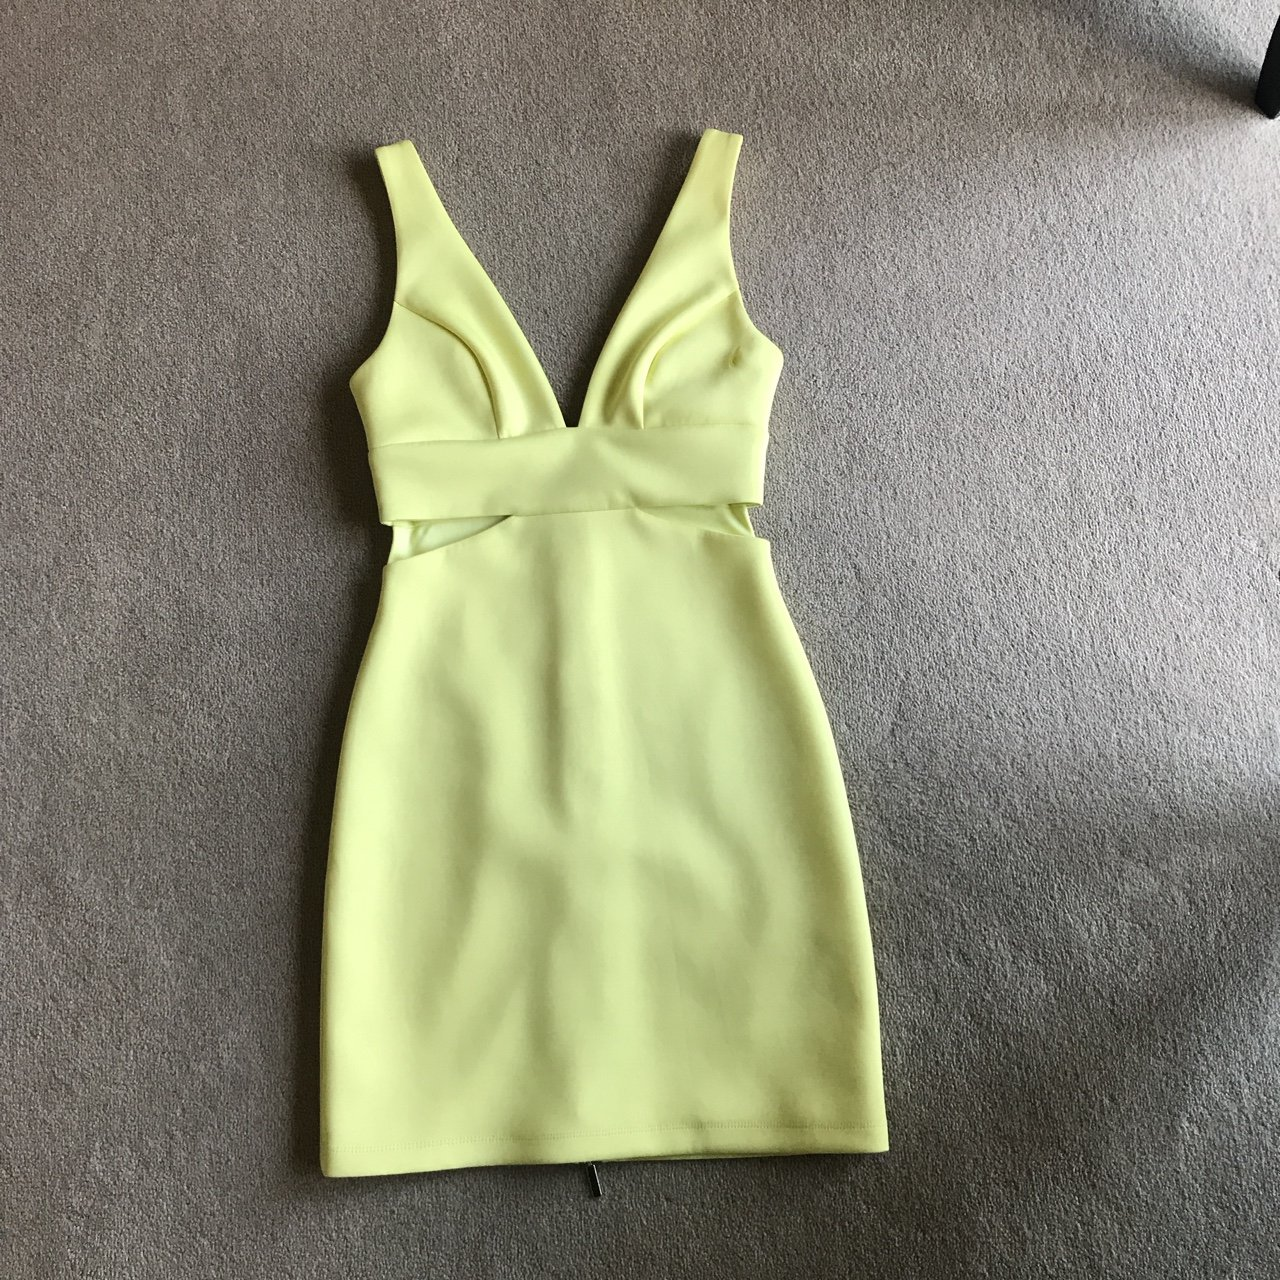 c14529449f Topshop plunge yellow dress in scuba material. Slight hole - Depop